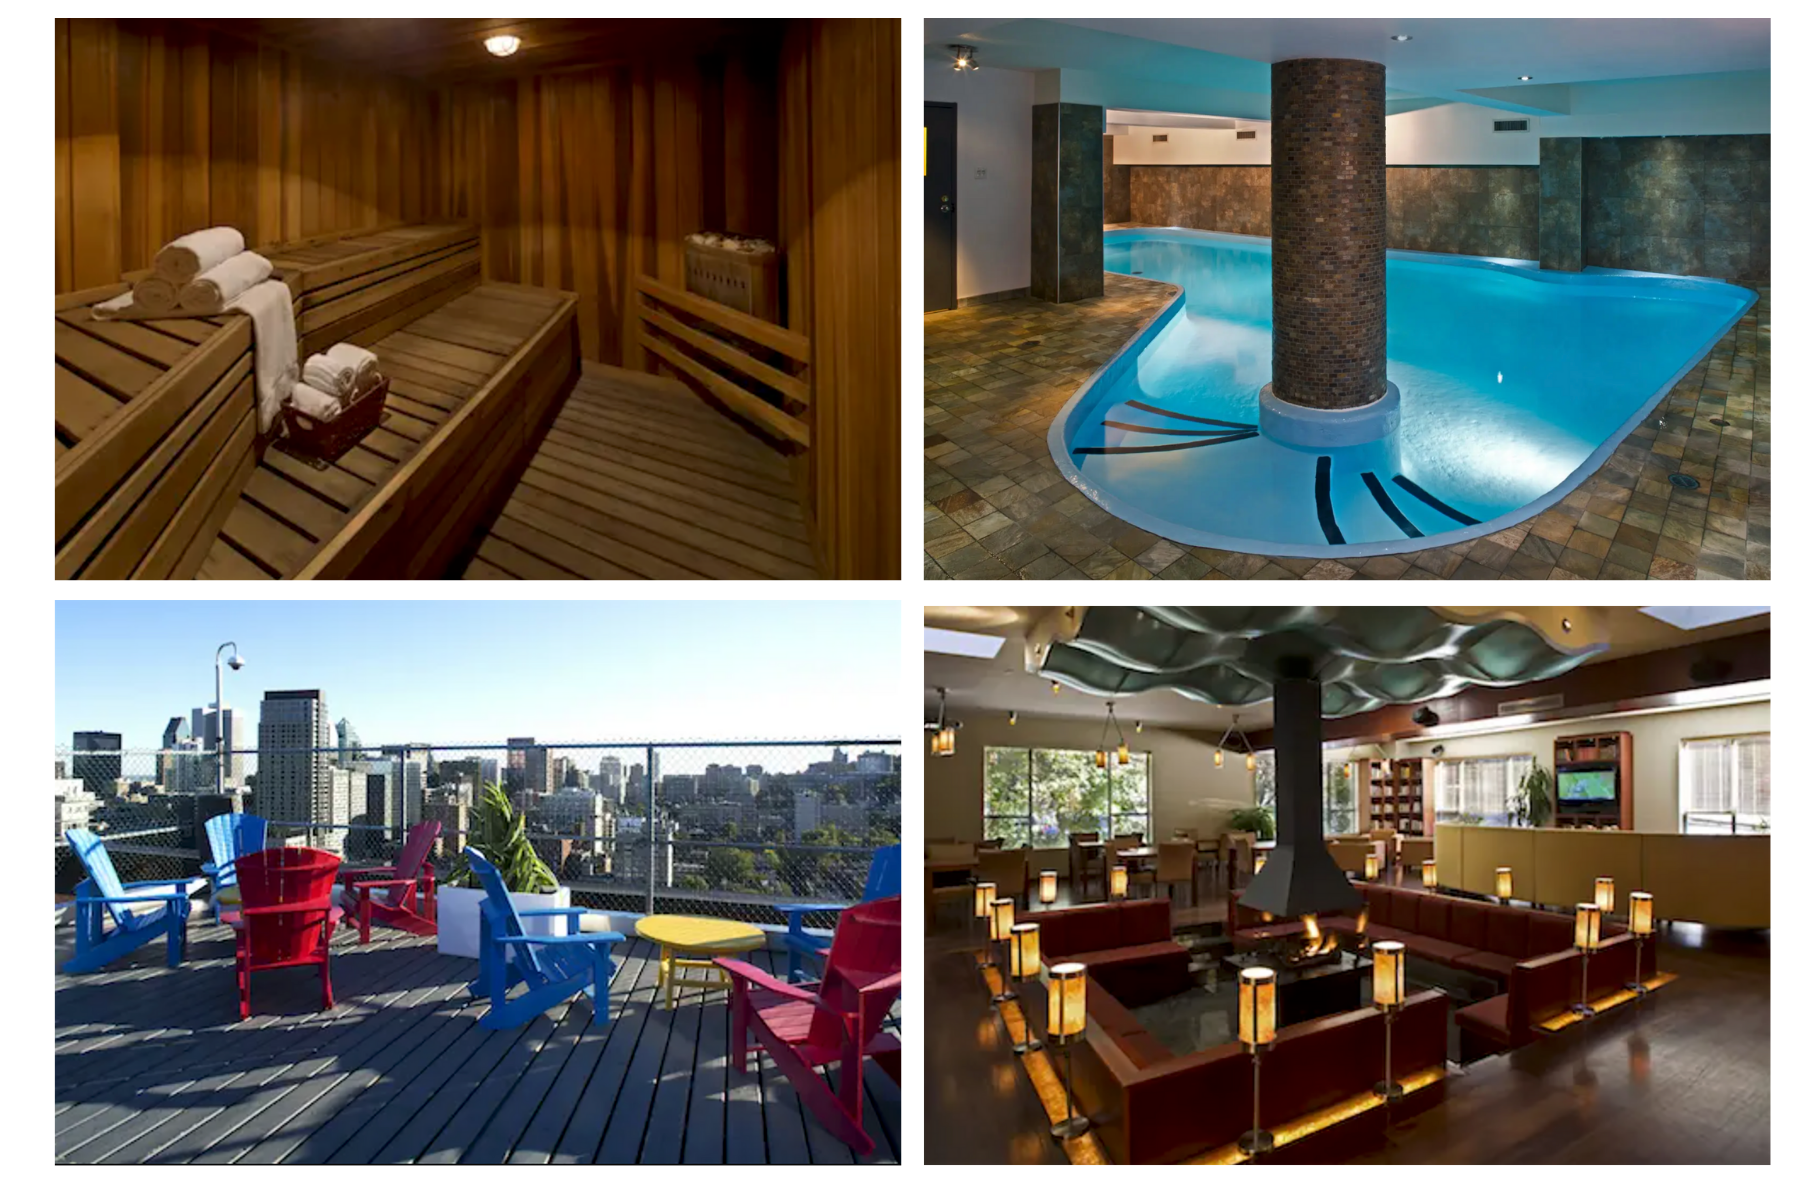 Just a few of things available to you at Hotel Trylon, swimming pool, sauna, rooftop terrace, Thalia lounge